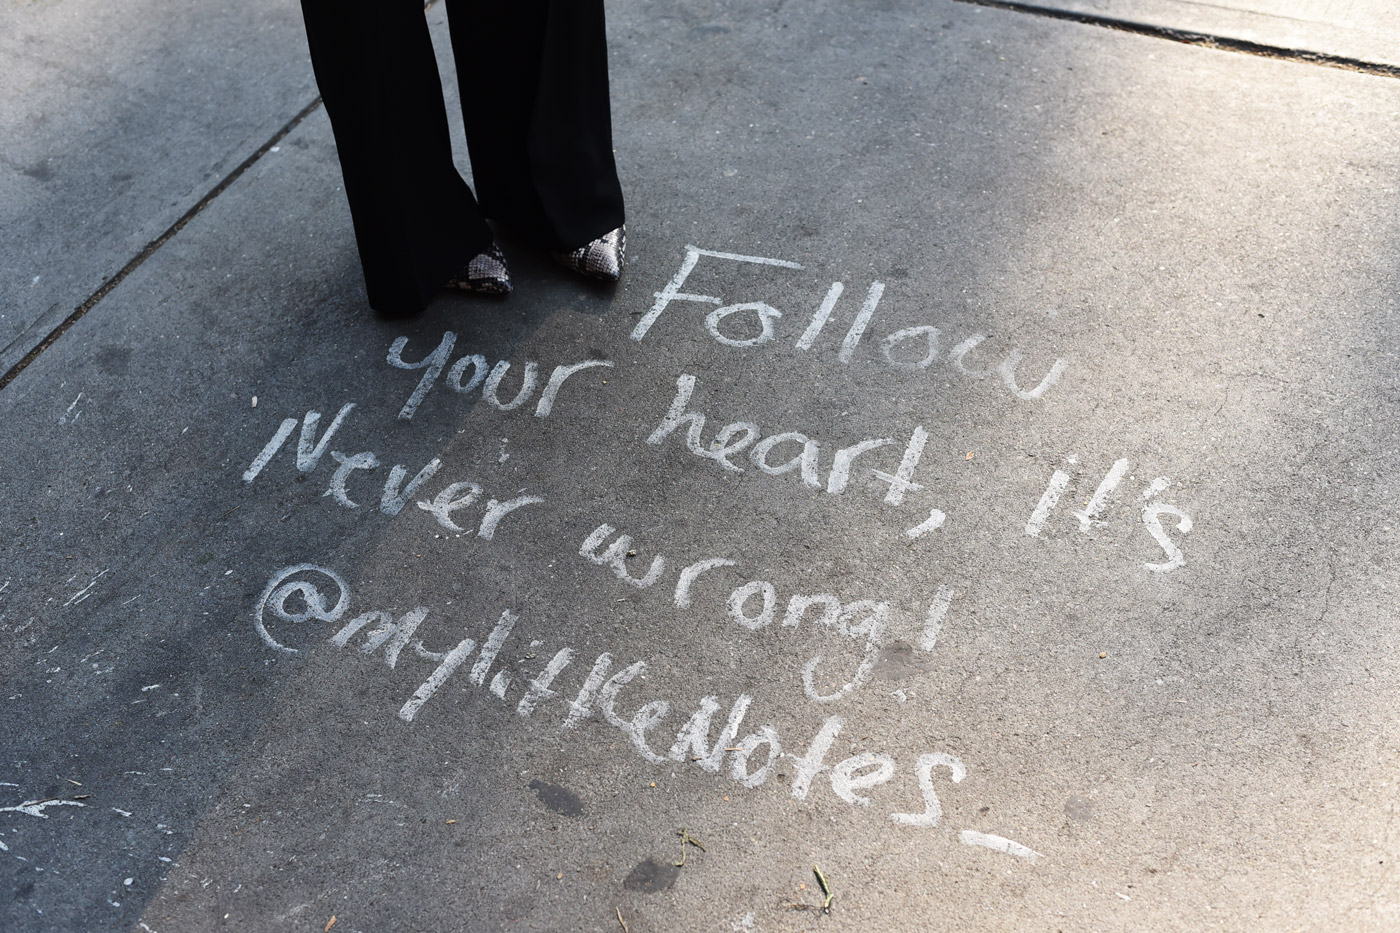 streetstyle-quote-chinatown-follow-your-heart-new-york-fashiioncarpet